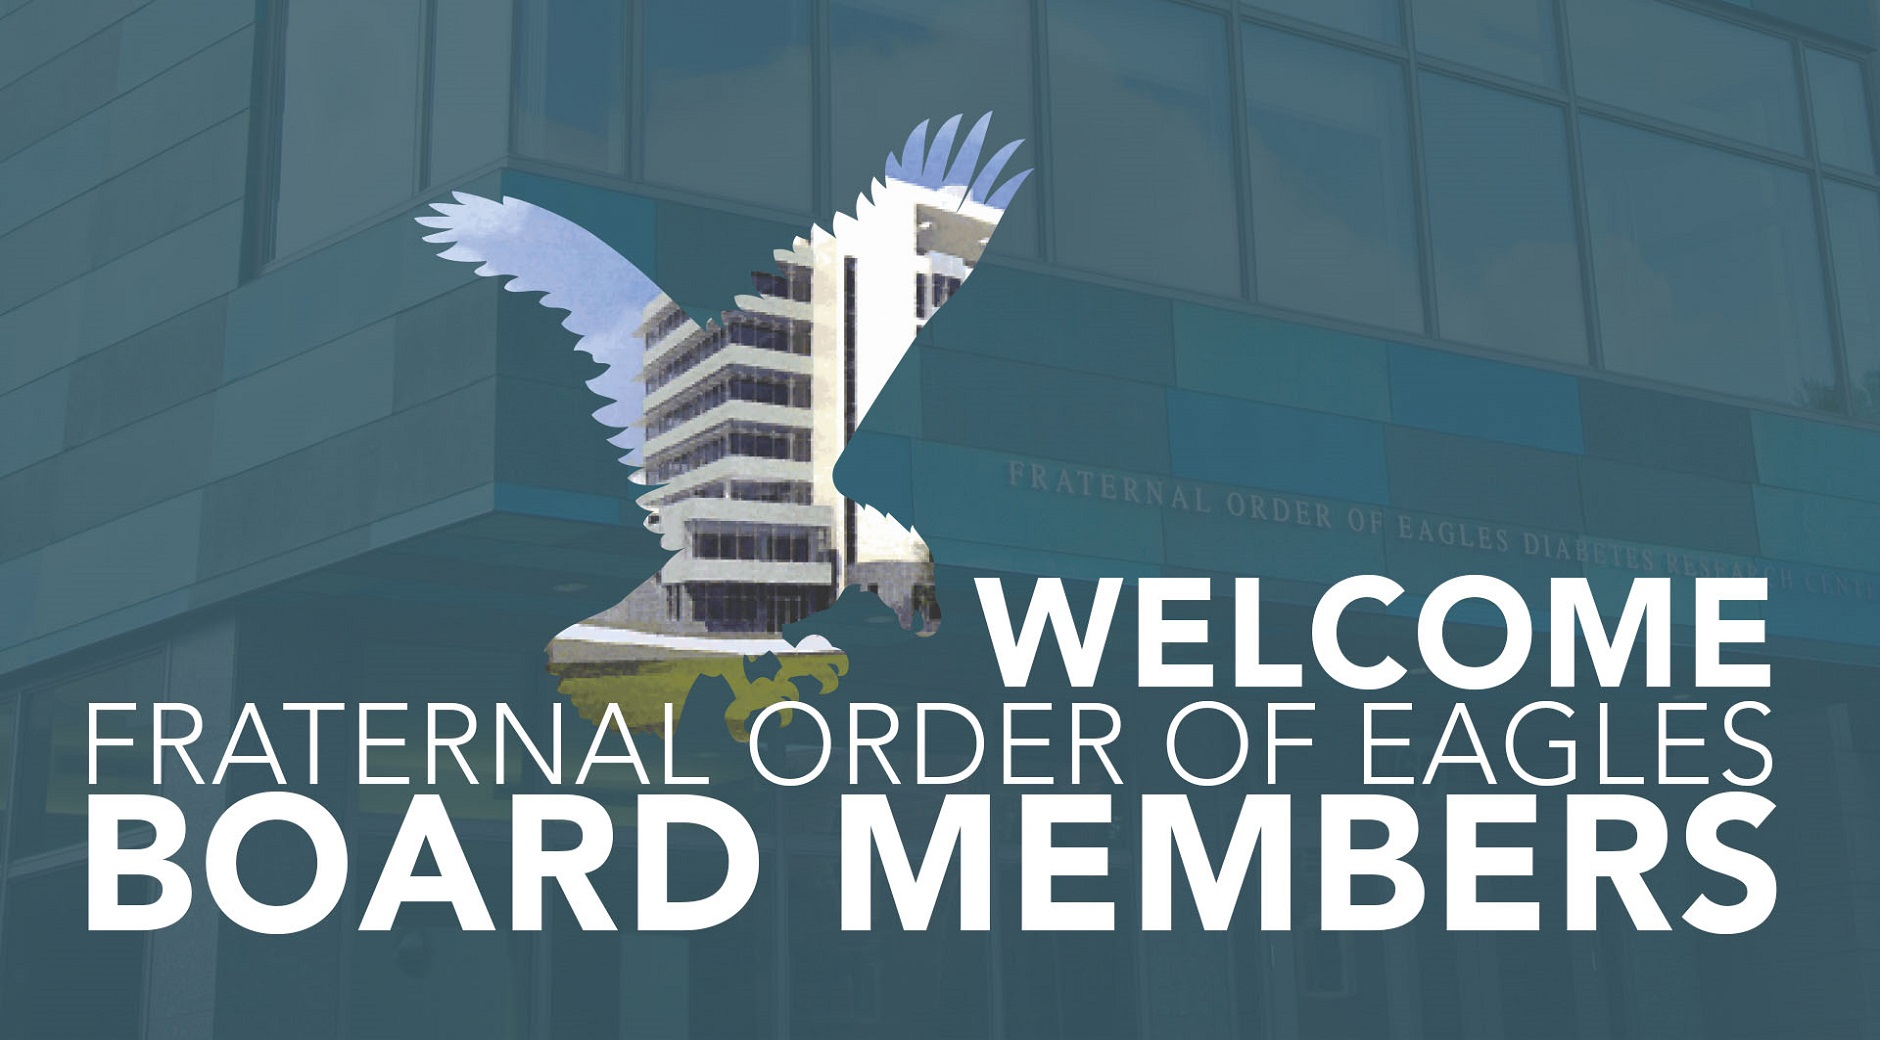 Welcome Fraternal Order of Eagles Board Members | Signage